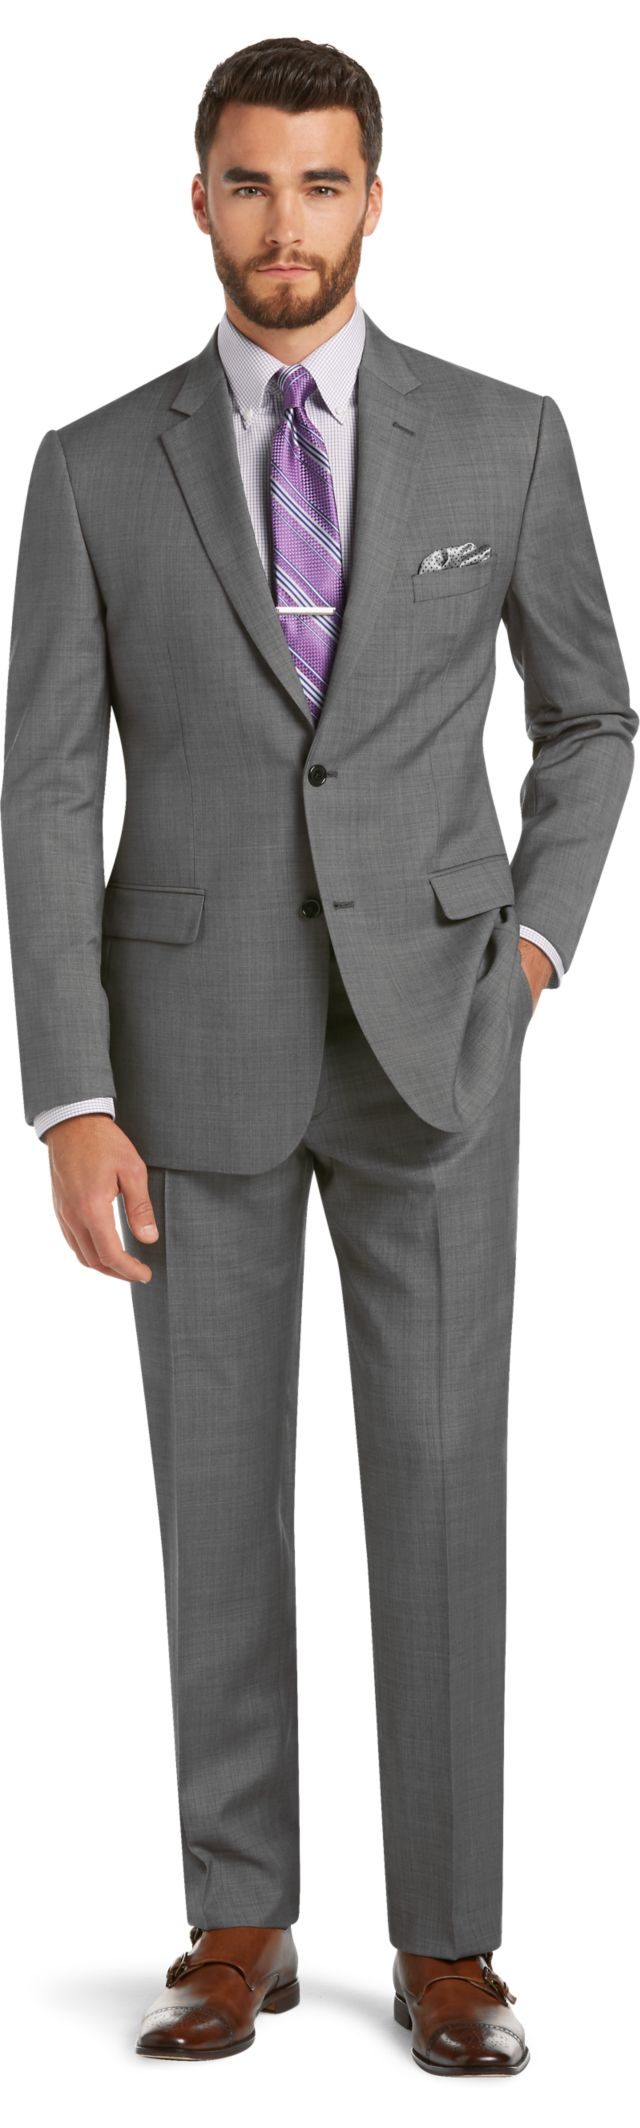 Factory Suits | Men's | JoS. A. Bank Clothiers